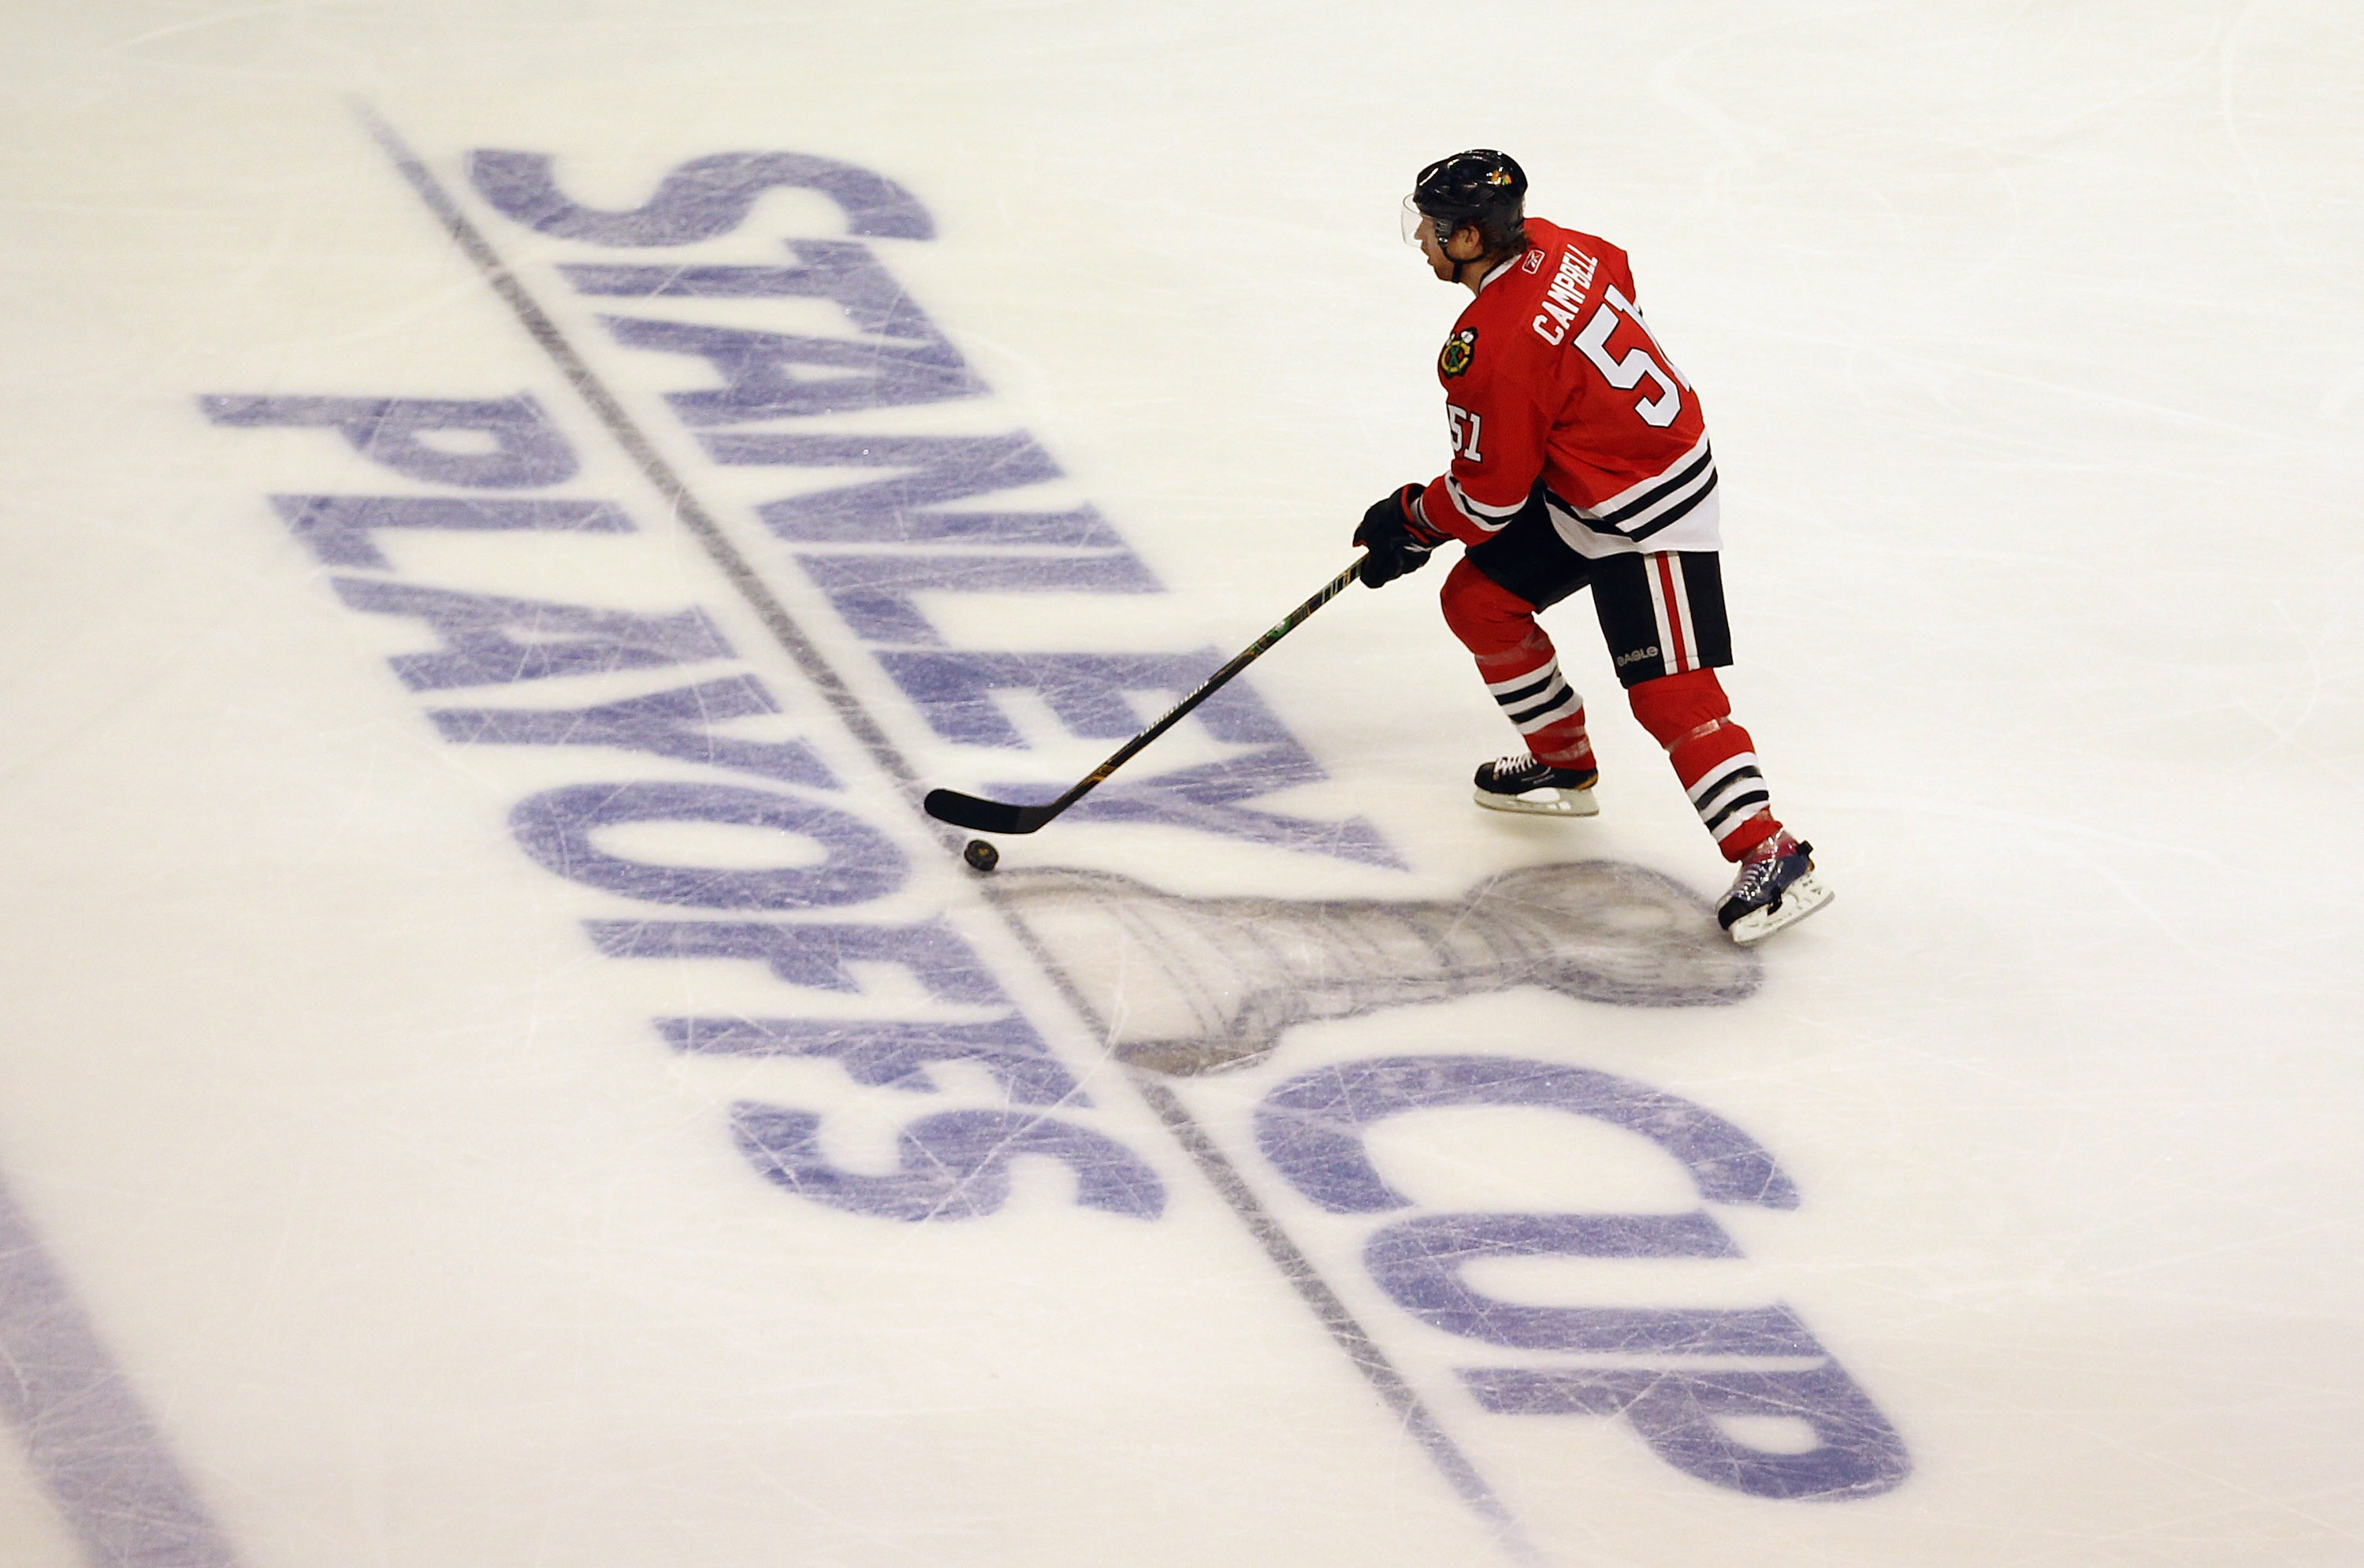 CHICAGO, IL - APRIL 17: Brian Campbell #51 of the Chicago Blackhawks skates up the ice against the Vancouver Canucks in Game Three of the Western Conference Quarterfinals during the 2011 NHL Stanley Cup Playoffs at the United Center on April 17, 2011 in C